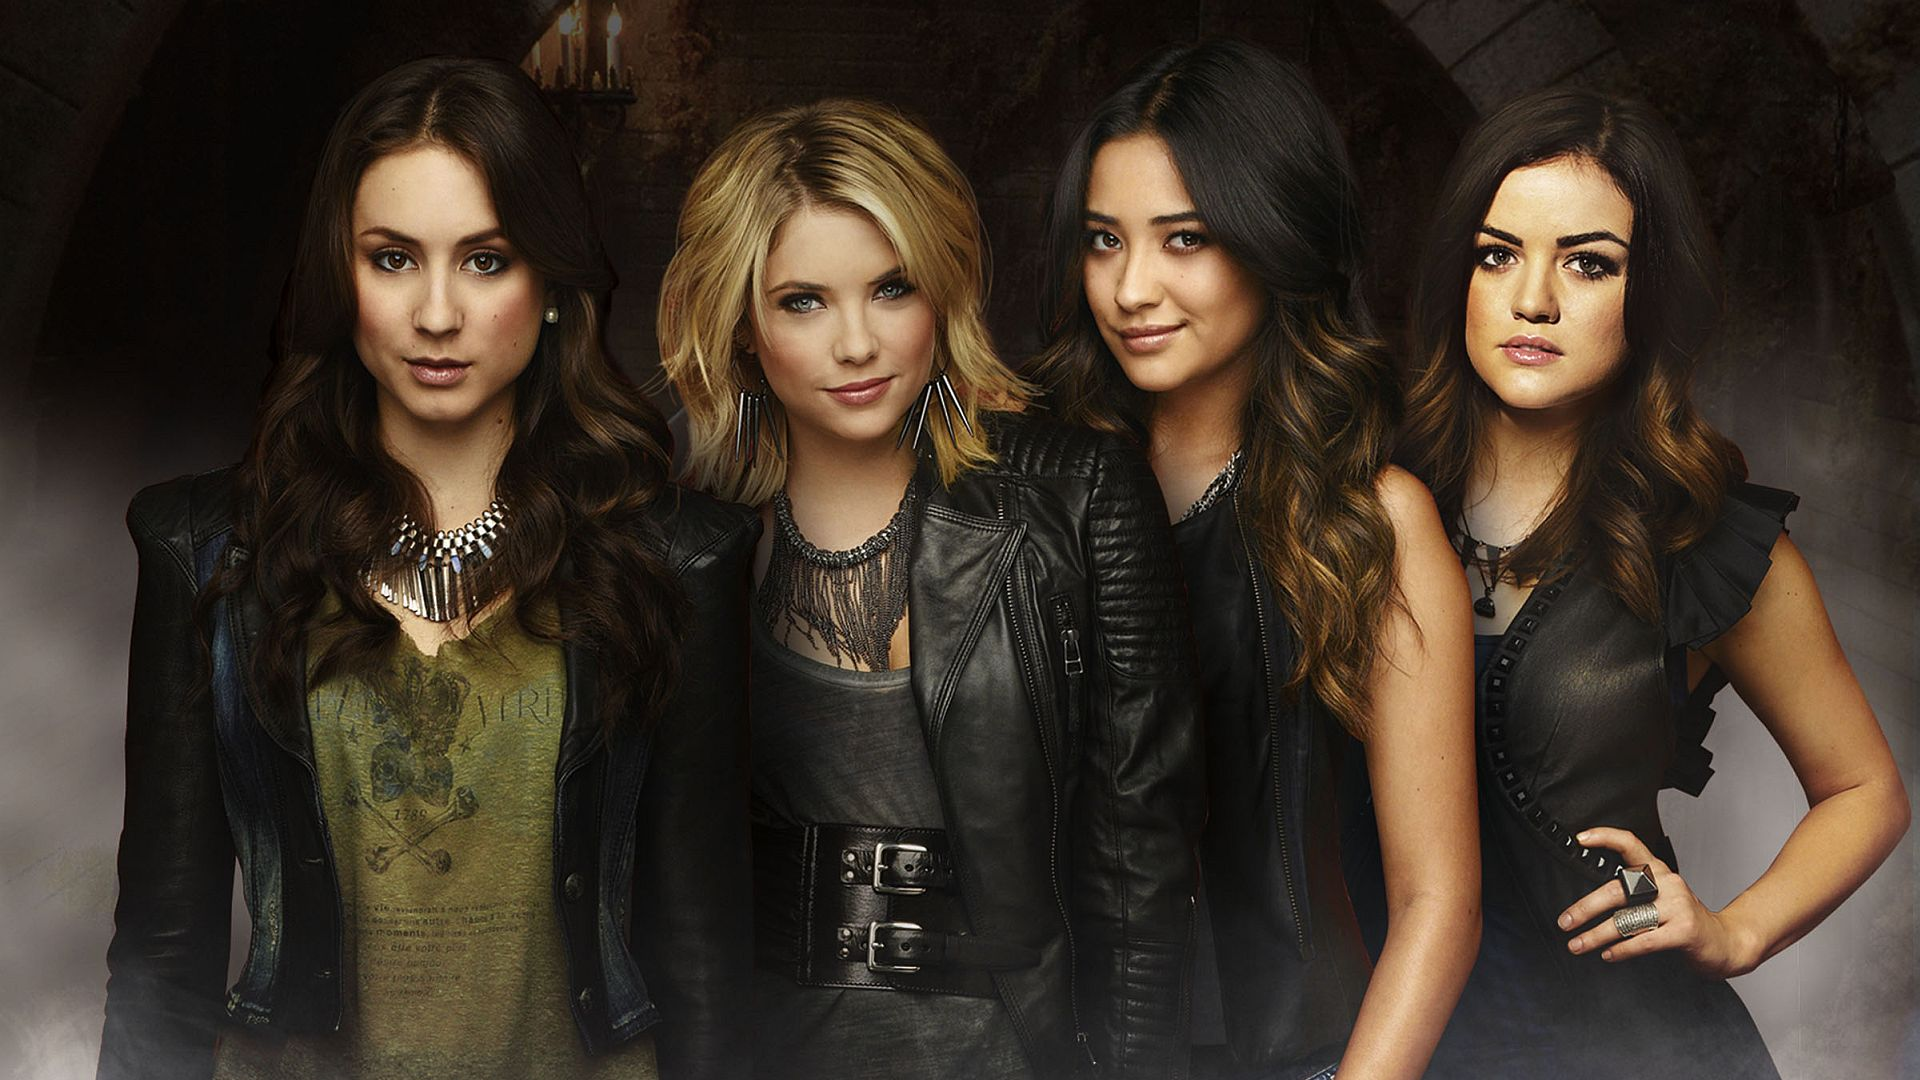 Vampire Diaries Hd Wallpapers 1366x768 Pretty Little Liars Full Hd Wallpaper And Background Image